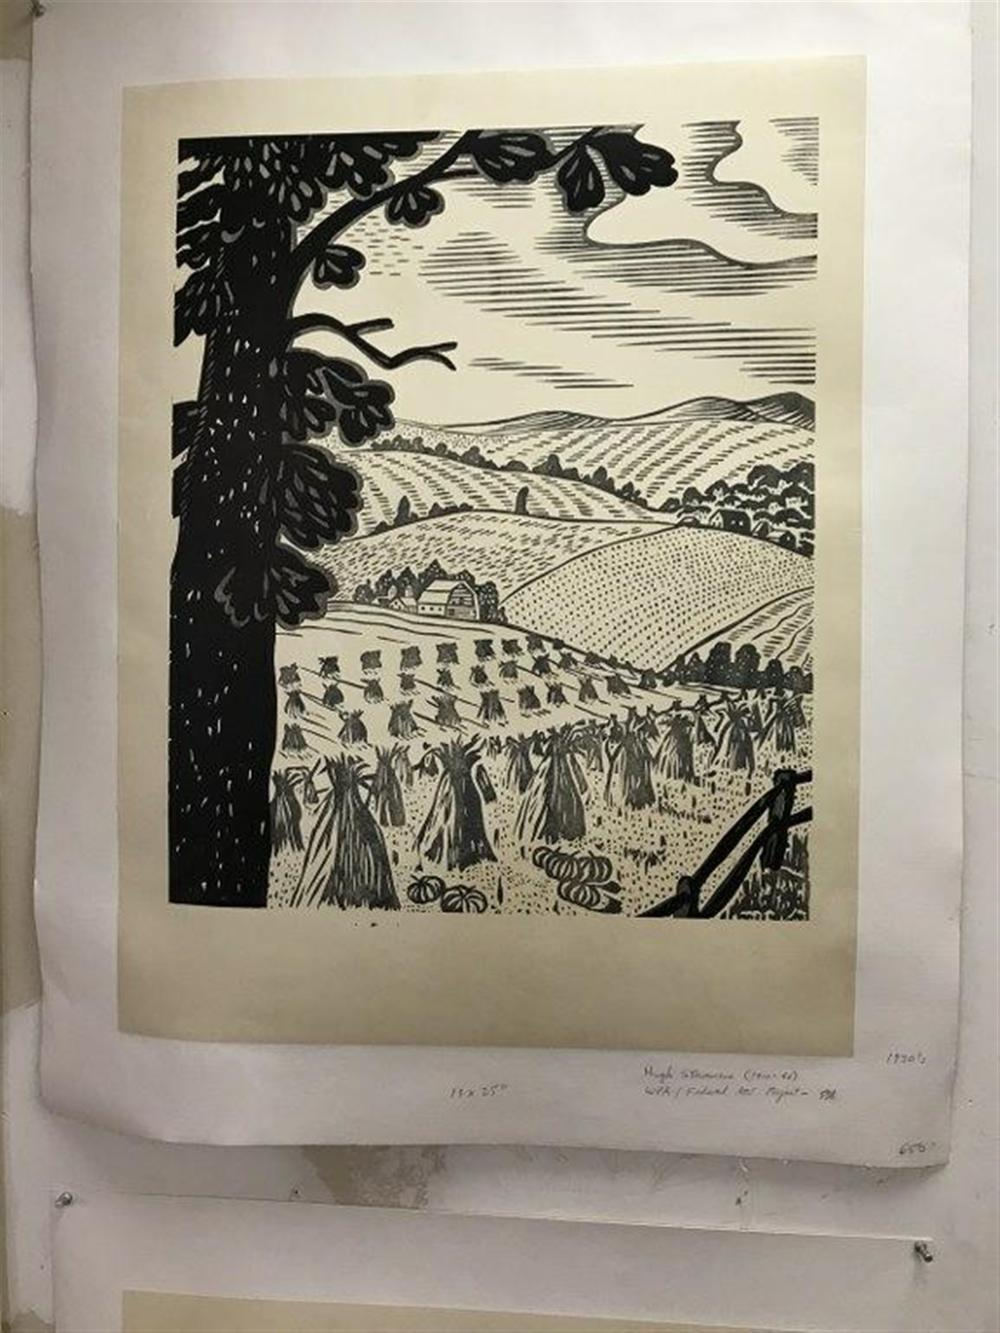 "POSTER- HUGH STEVENSON WPA CIRCA 1930'S, LINEN BACKED, ROLLING HILLS, FARM AND CROPS, POSTER MEASURES 25"" X 19""."